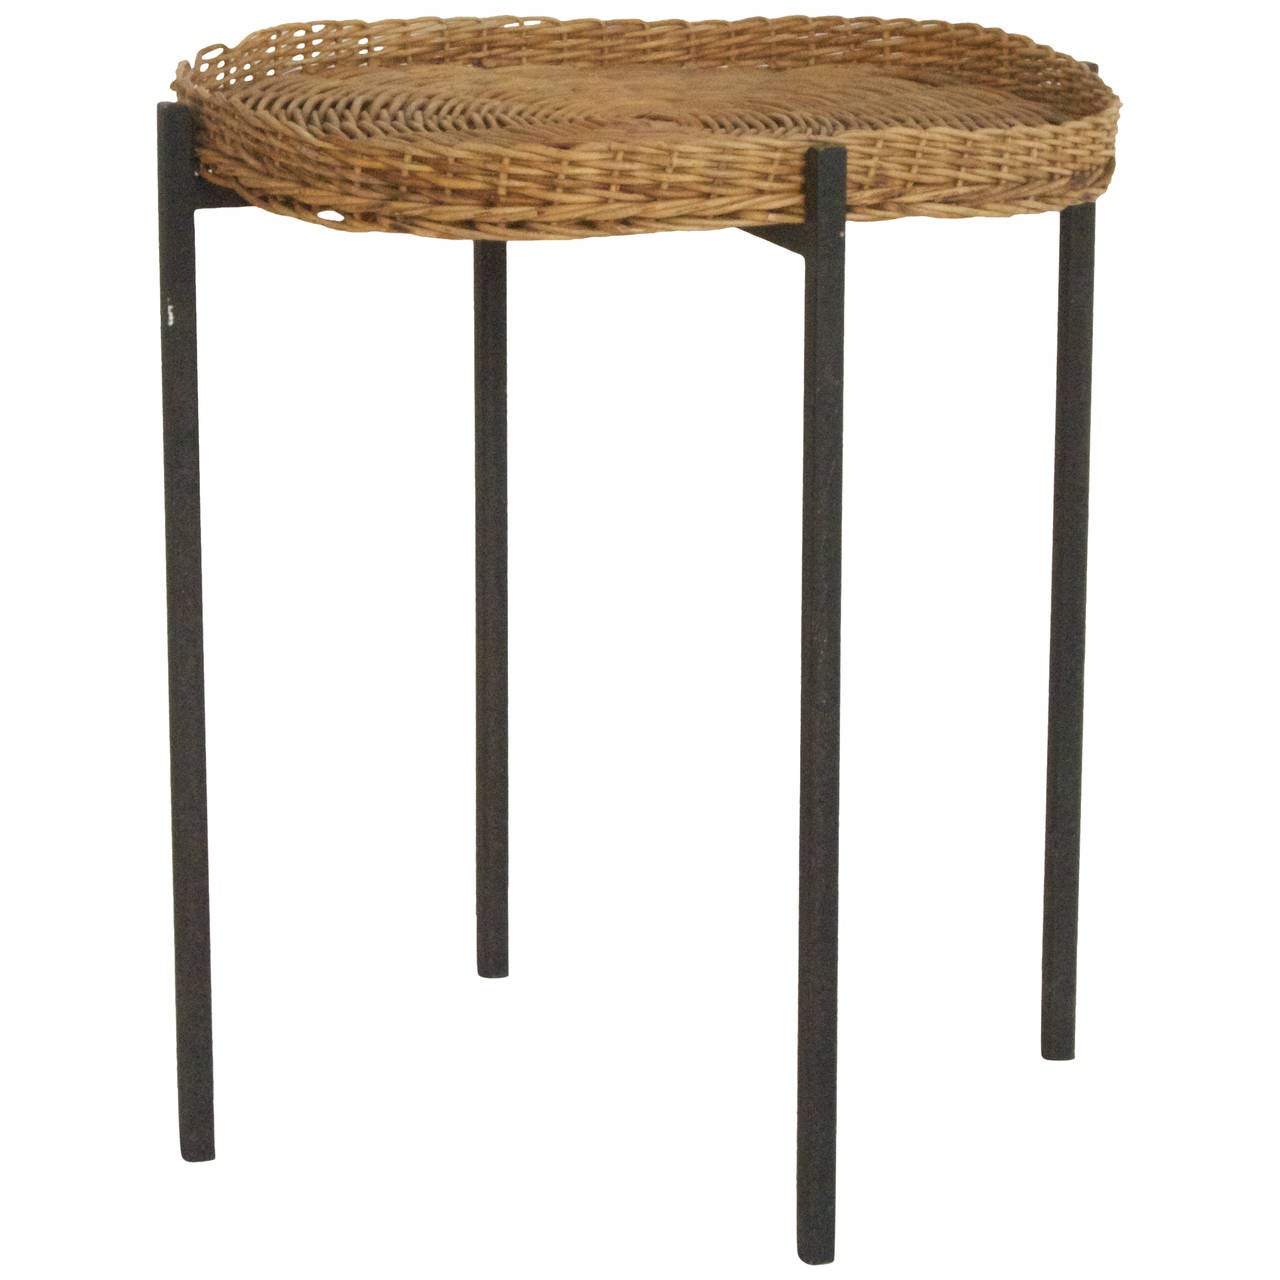 Rare Coffee Table By Carl Aub Ck For Sale At 1stdibs